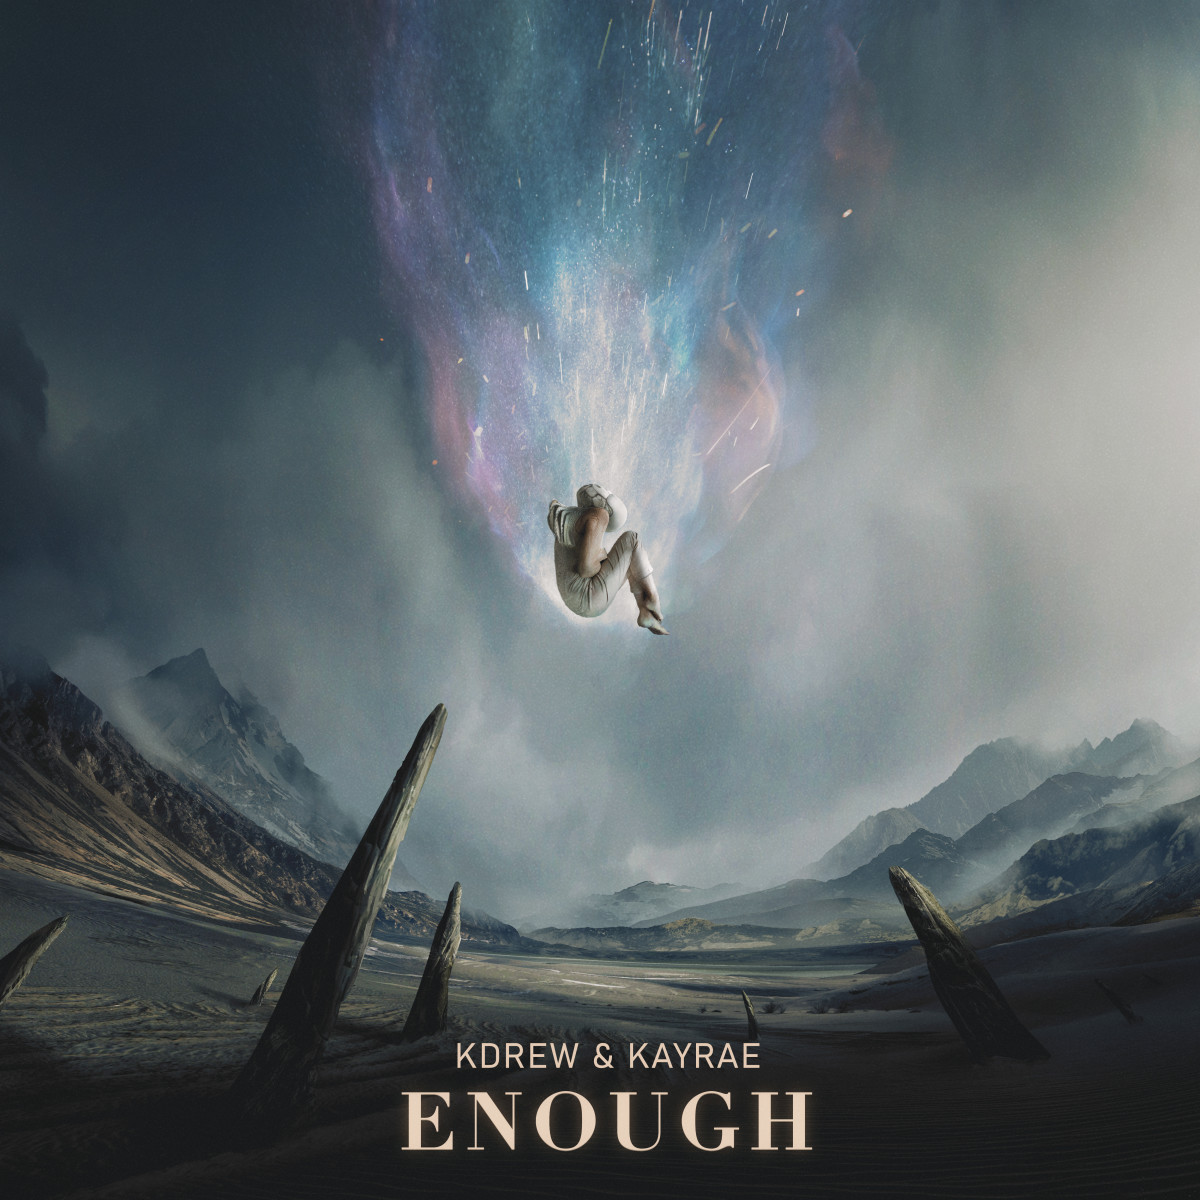 """Artwork for KDrew and Kayrae's new song """"Enough."""""""